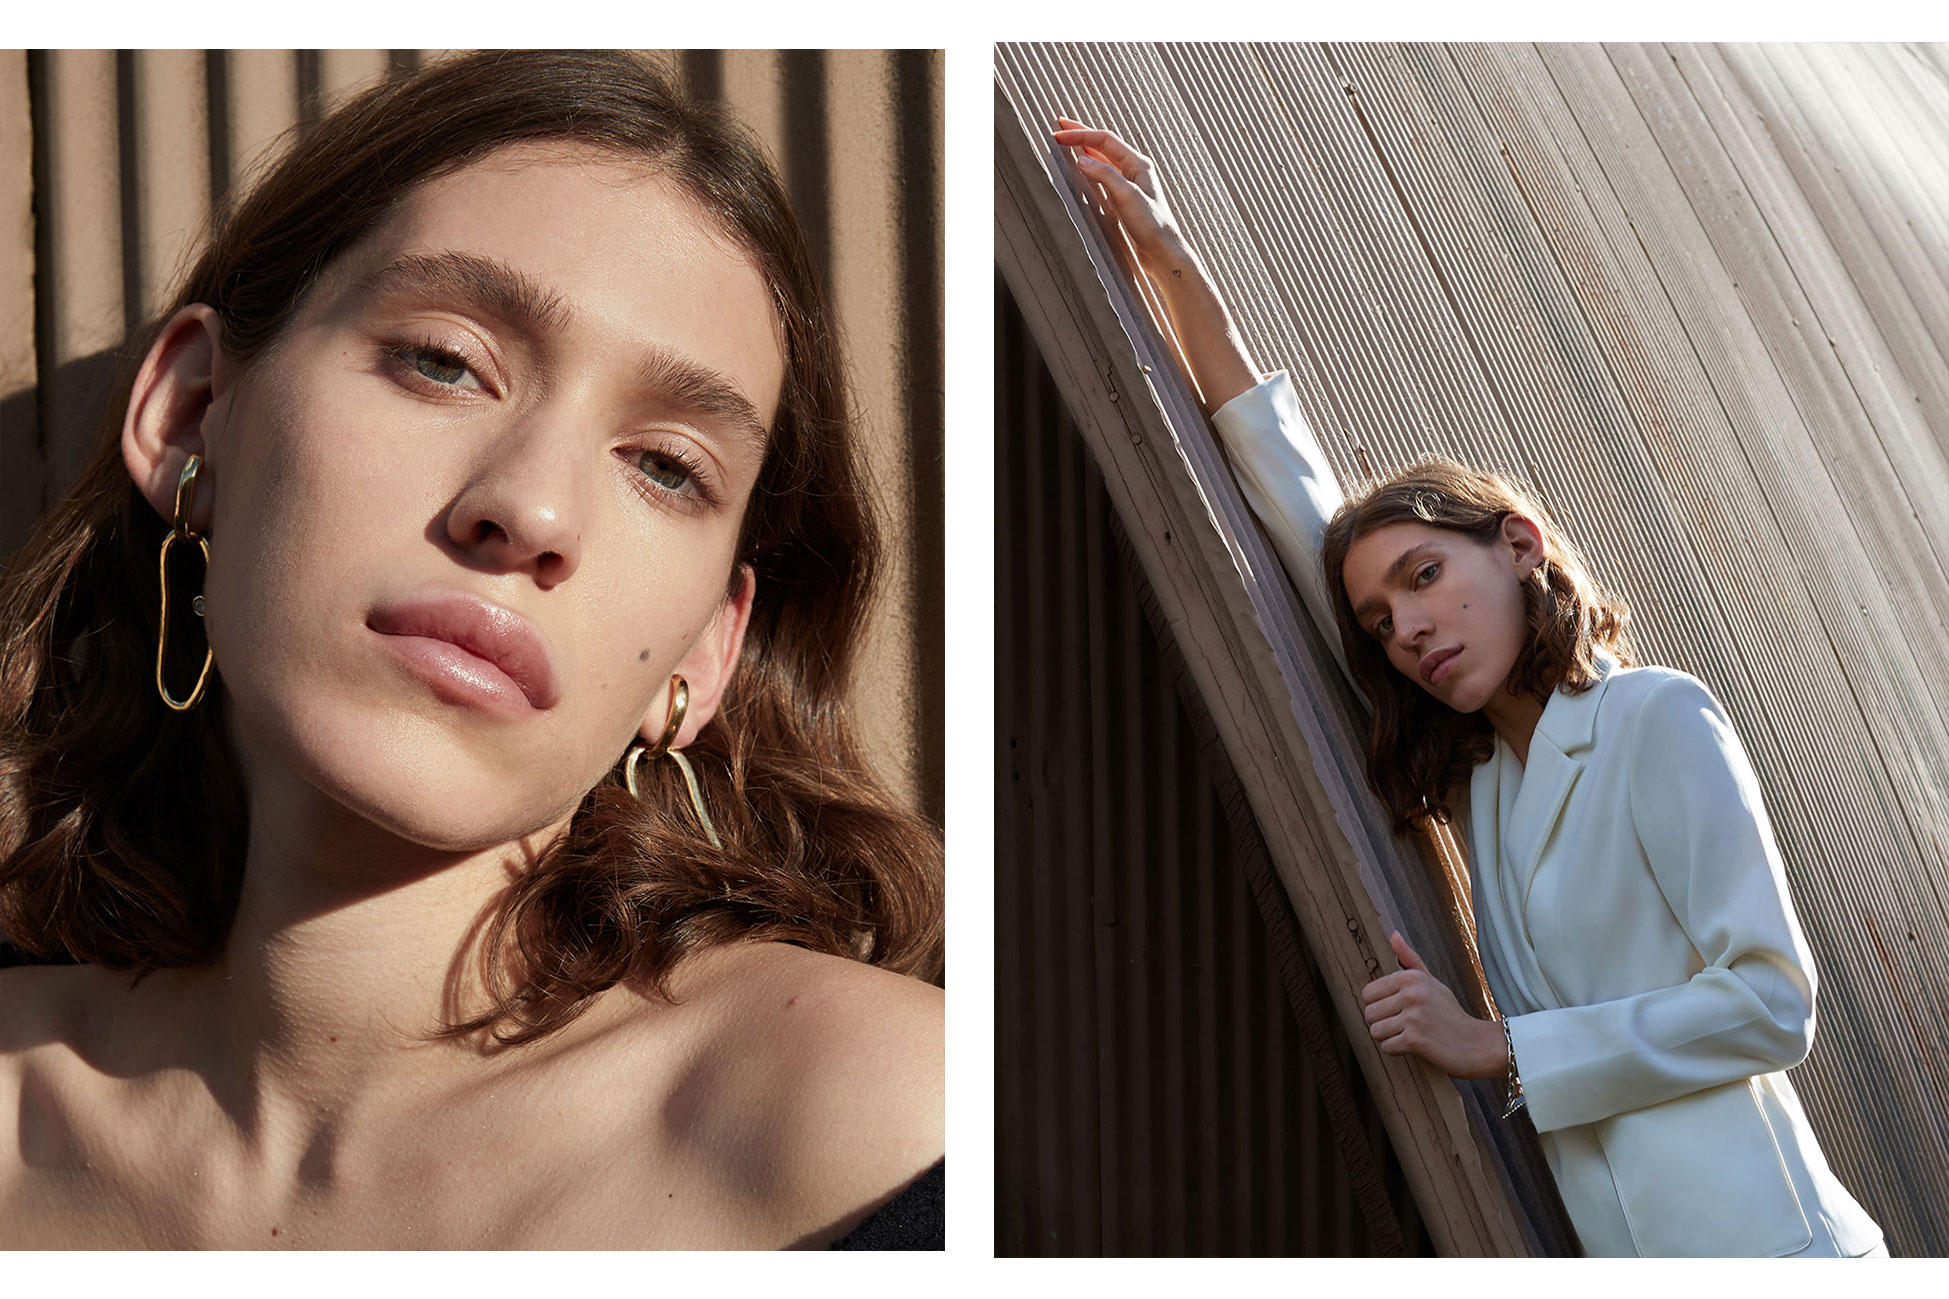 Colored photos by Manolo Campion for MONROWE Magazine styled by Carolina Orrico